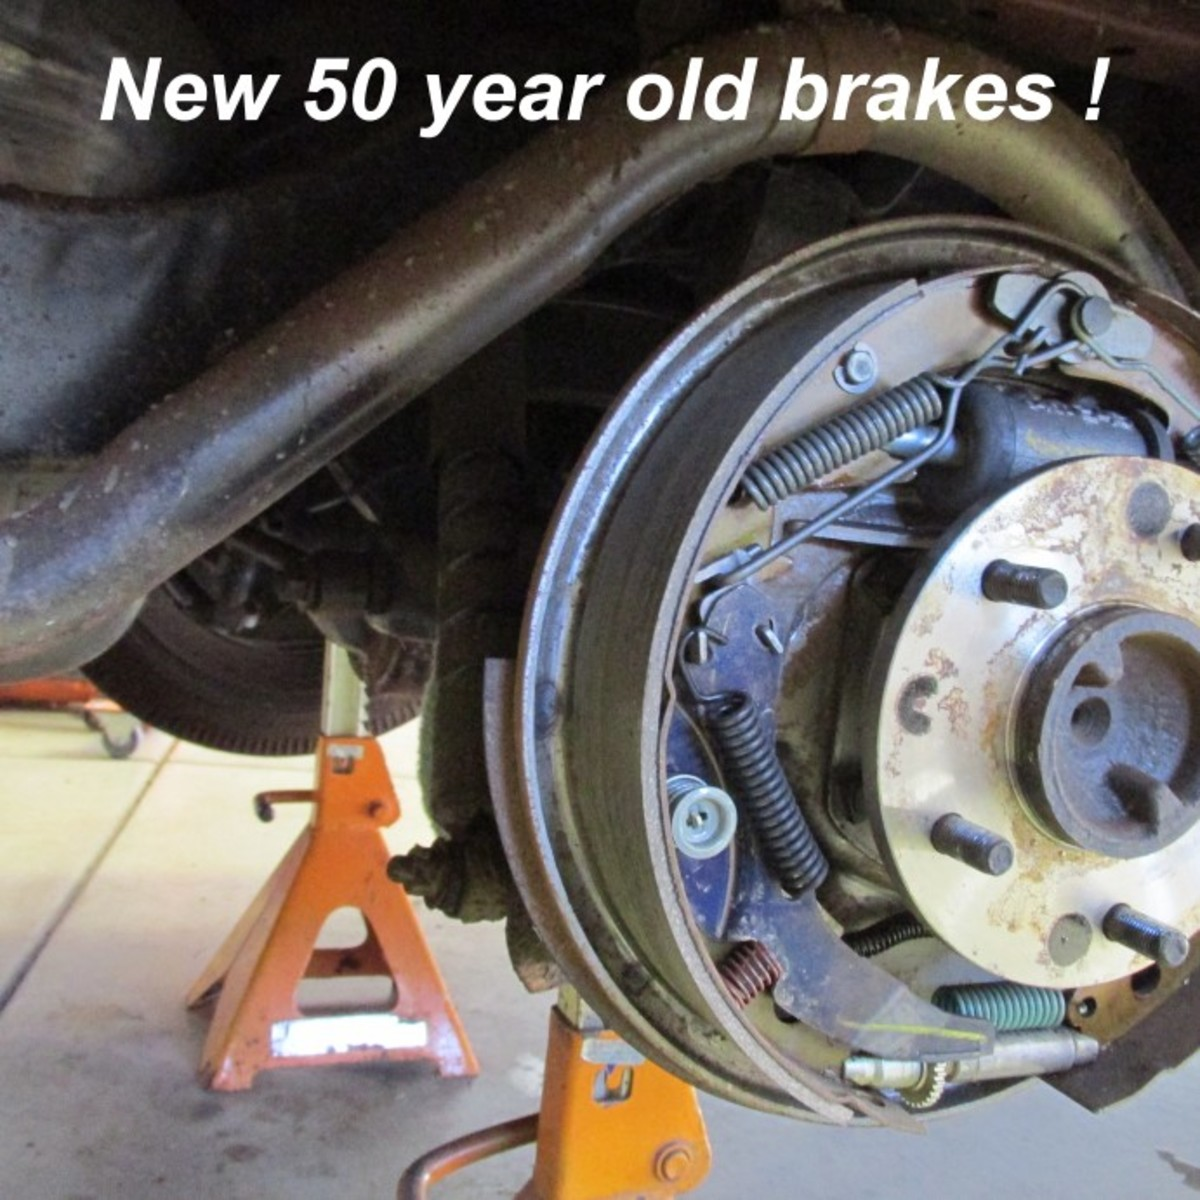 Here's what original brake shoes and hardware looks like on a 1963 Chevrolet Impala.